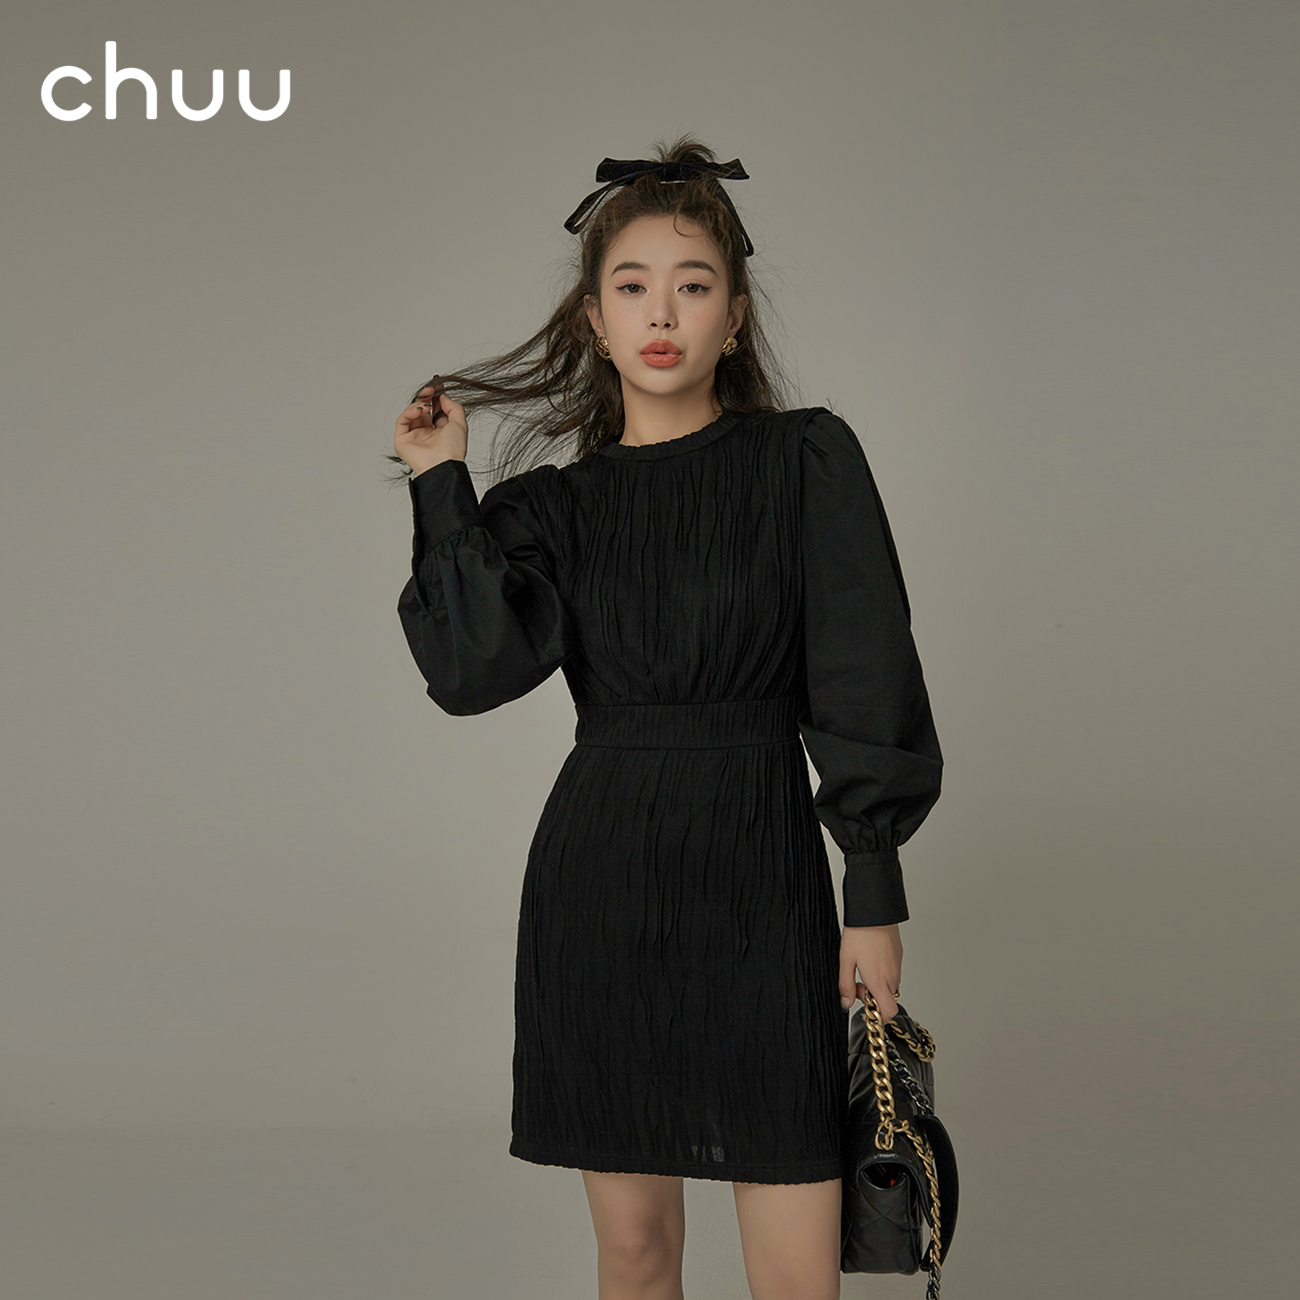 Chuu dress female 2021 new spring splicing fake two small son bubble sleeve long sleeve a word short skirt